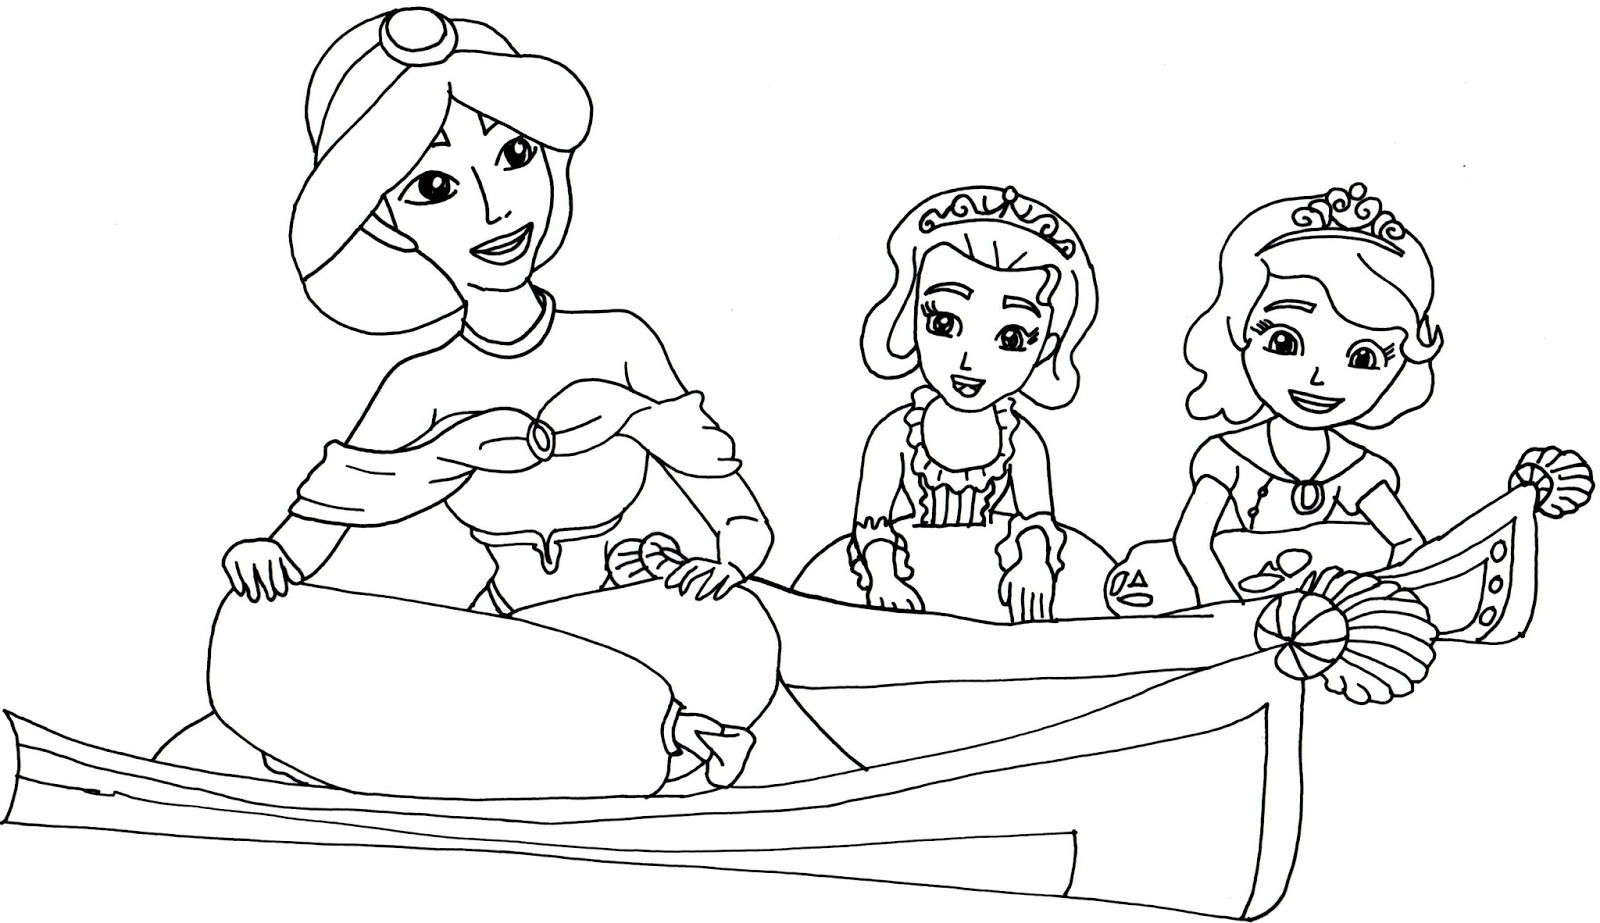 Sofia the First Coloring Pages - Best Coloring Pages For Kids